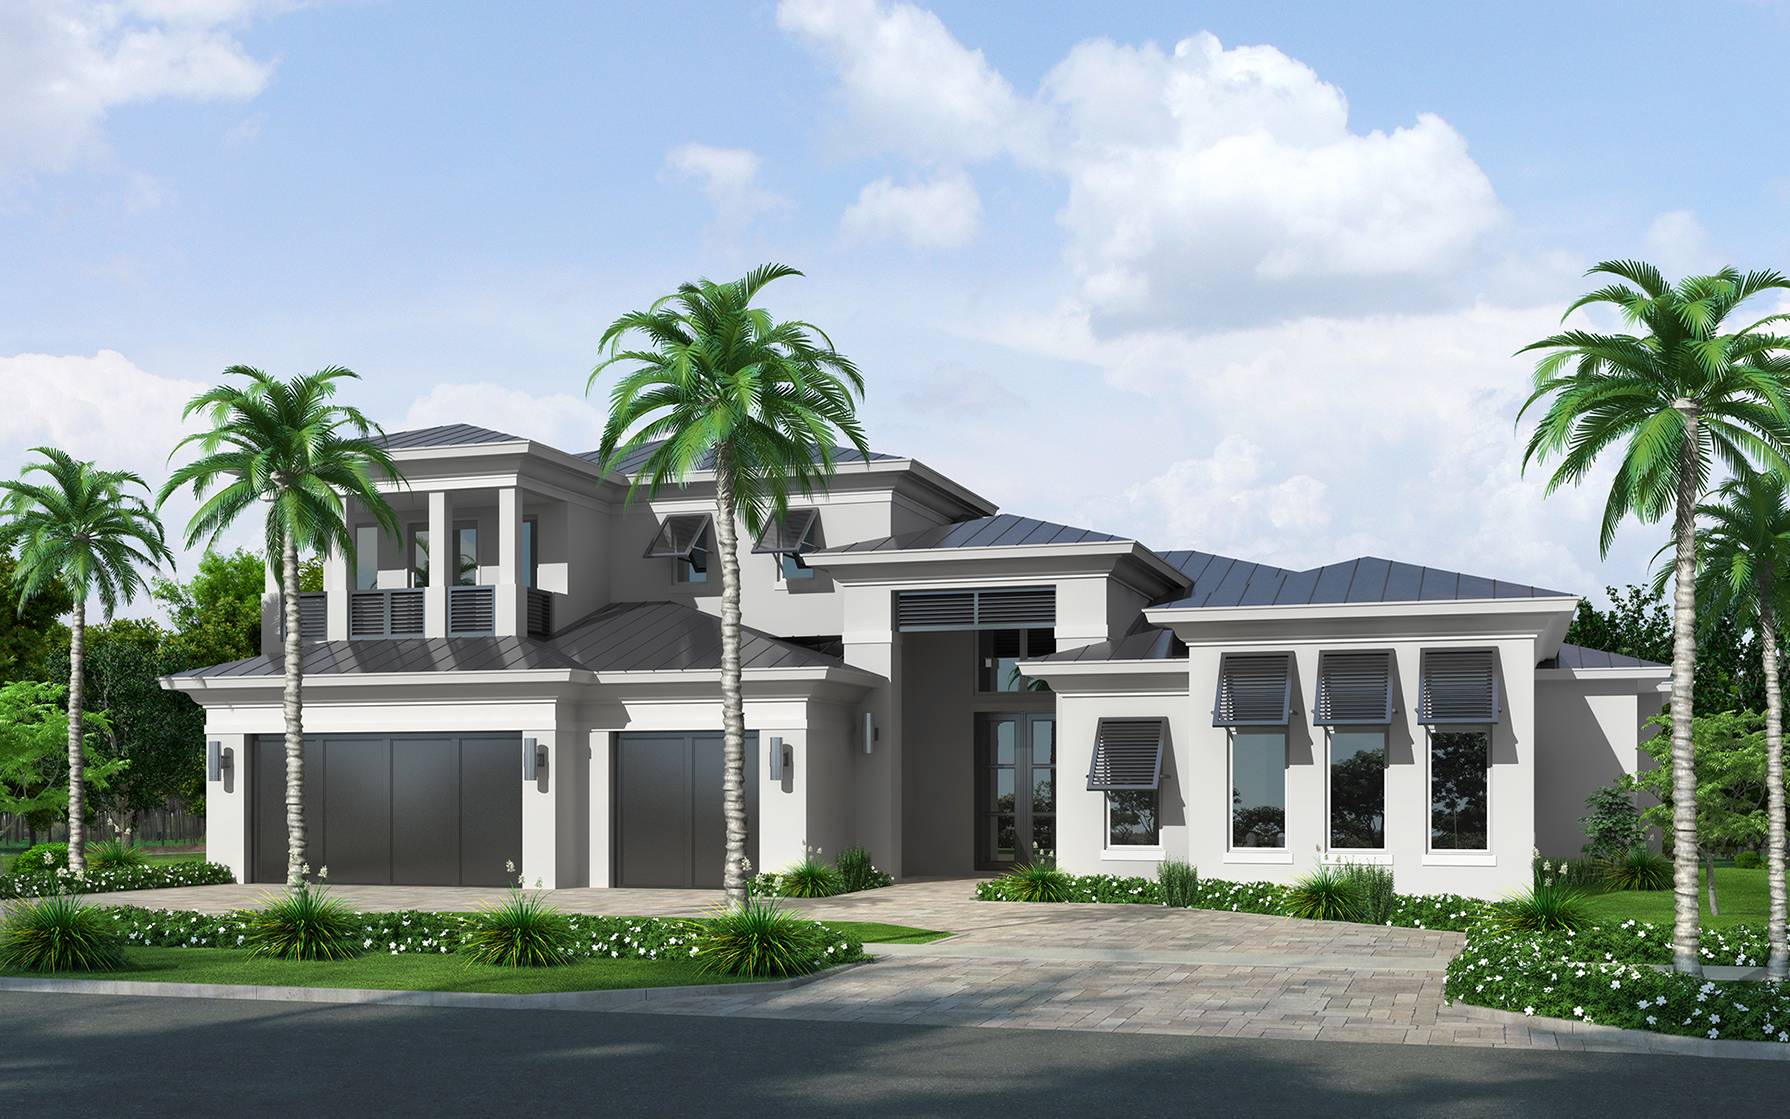 South florida custom home building ccm 561 436 3679 for Www home